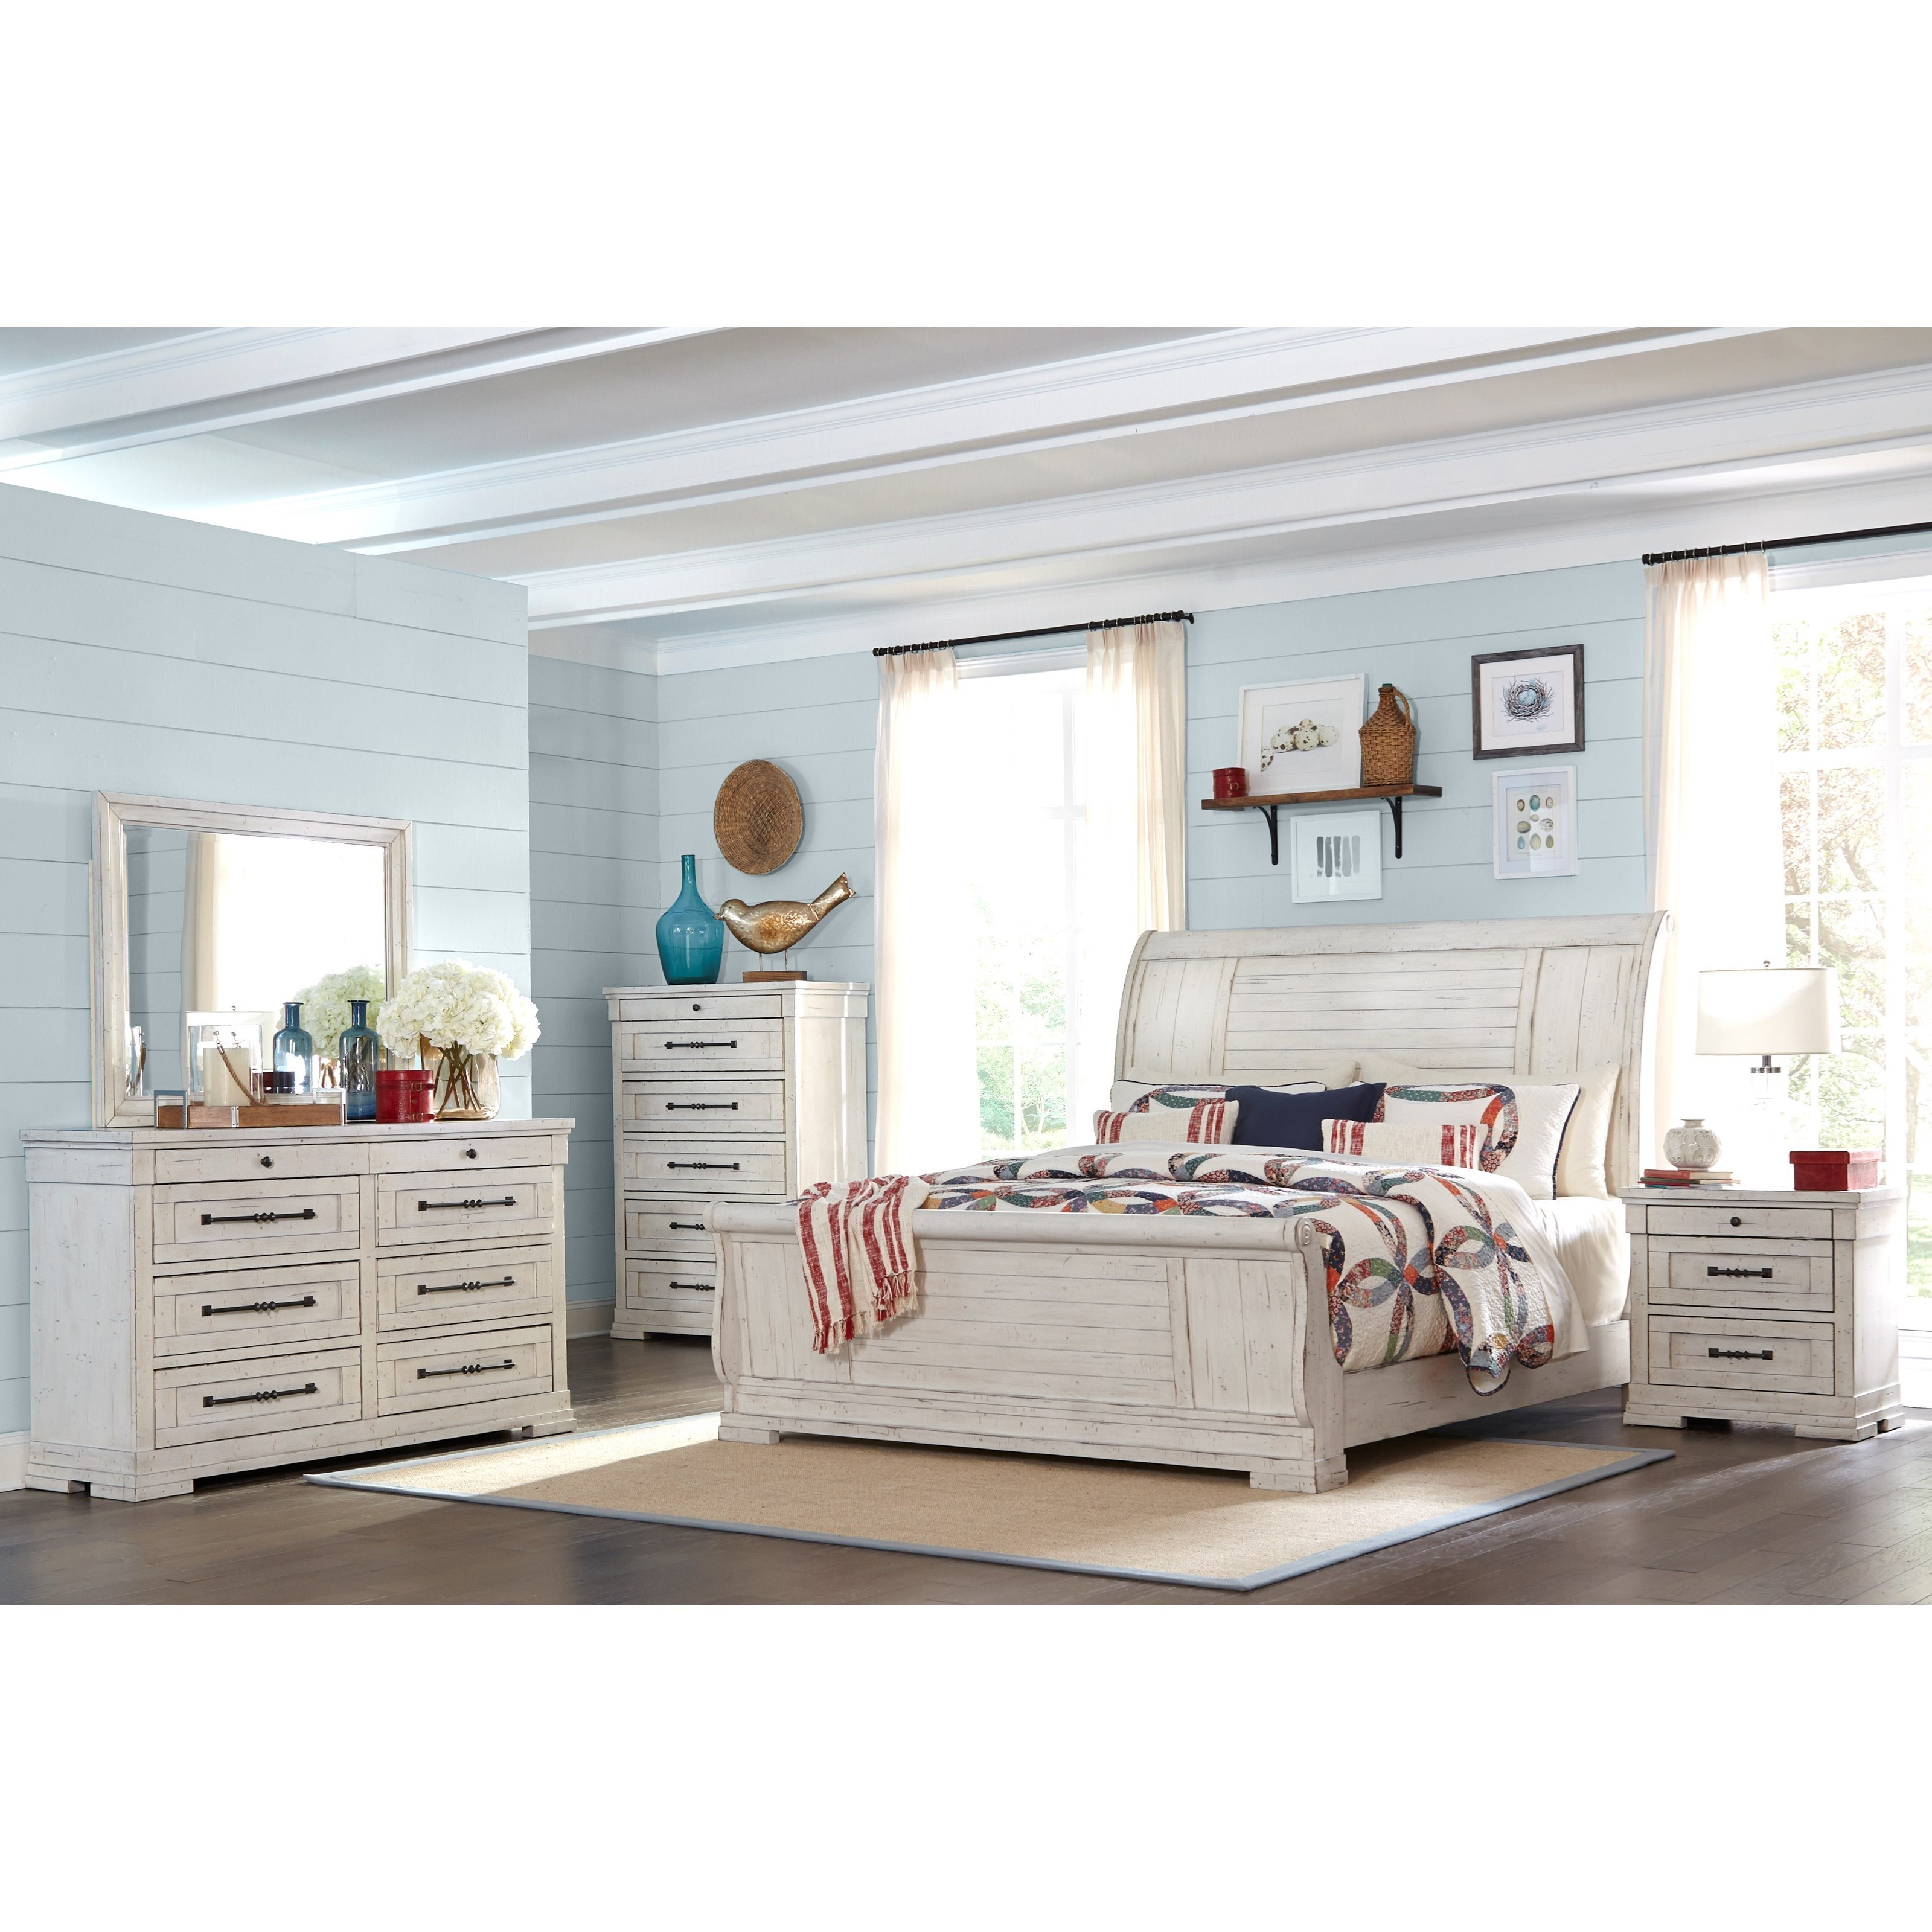 Trisha Yearwood Home Collection By Klaussner Coming Home King Bedroom Group Sam Levitz Furniture Bedroom Groups